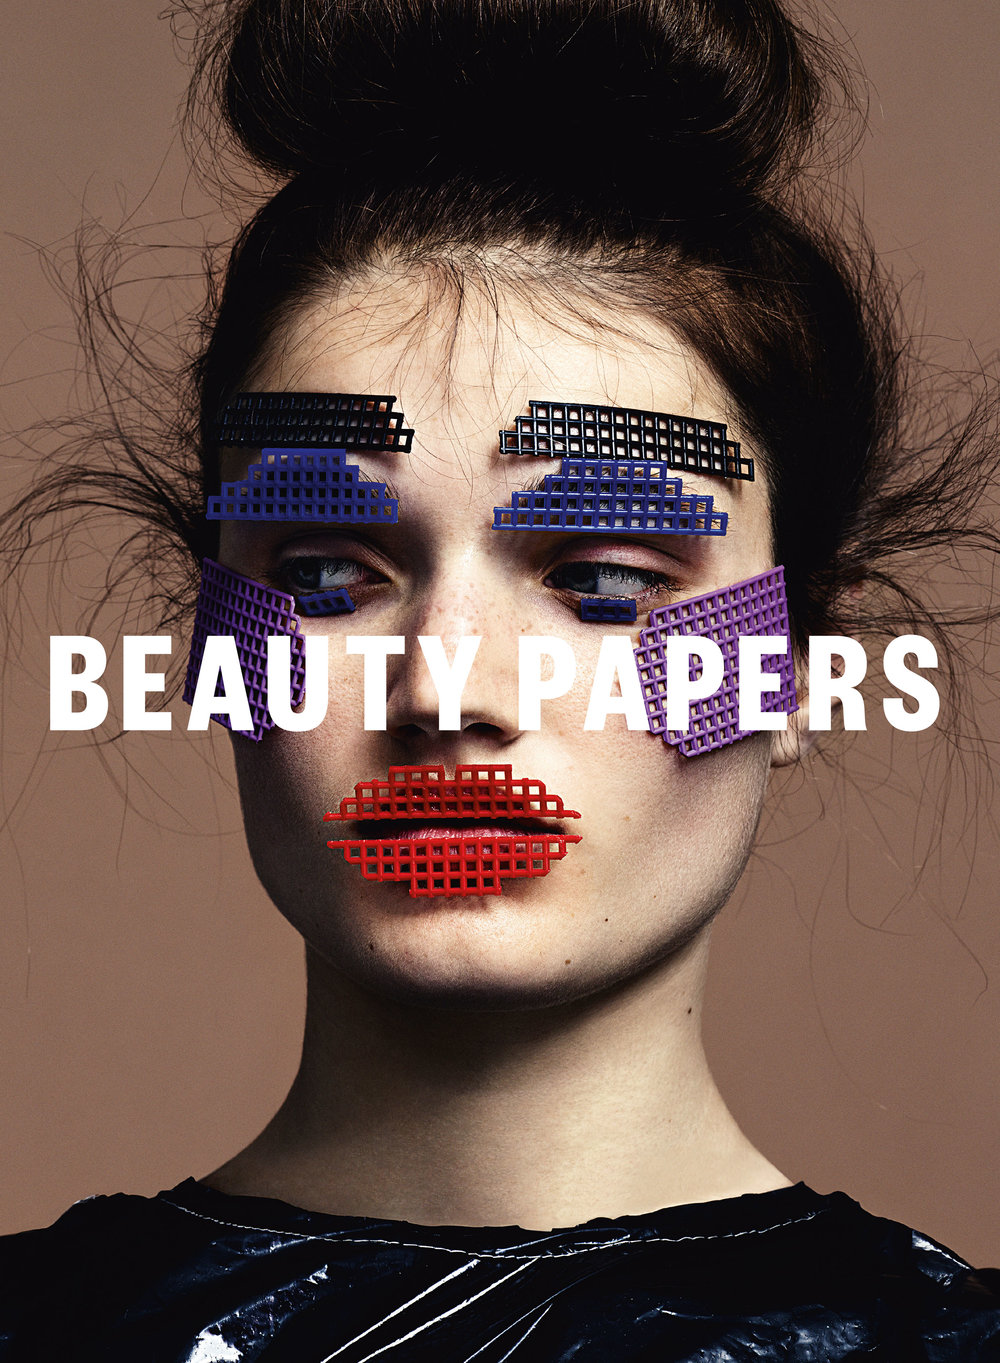 16FW-BeautyPapers-Recycle-RMR-15.jpg